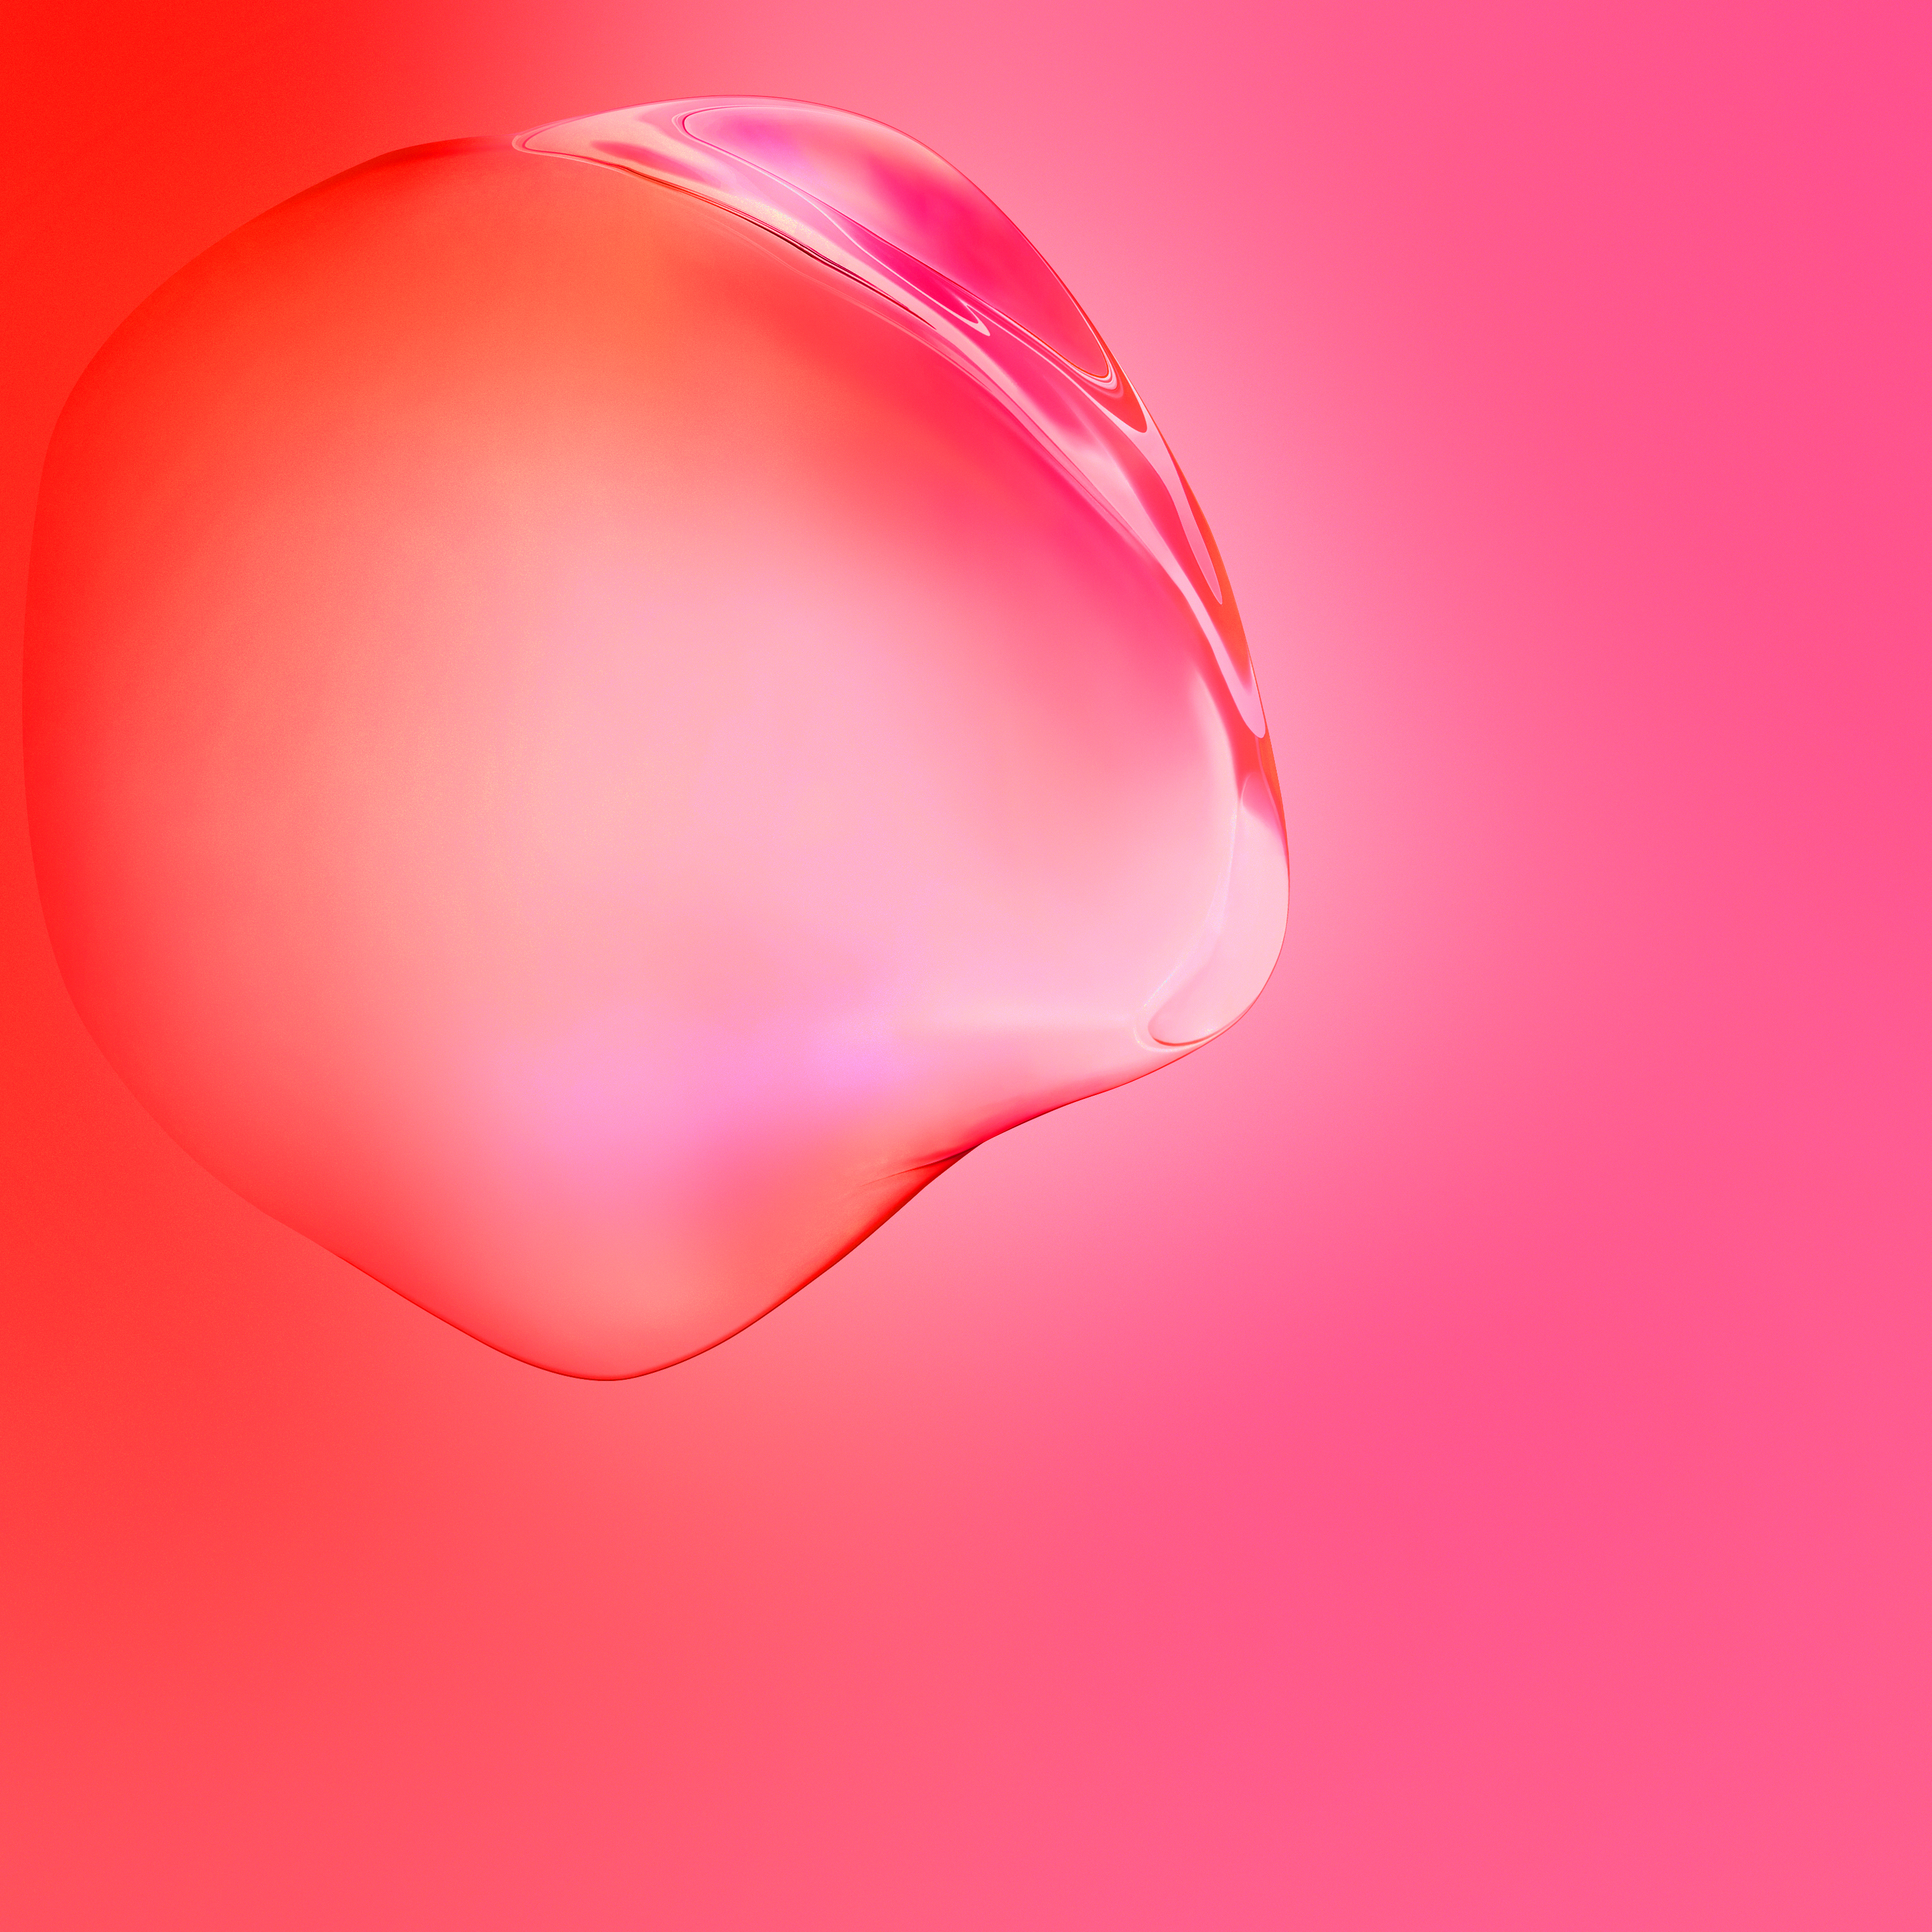 samsung galaxy s11 red bubble gradients stock 3040x3040 1711